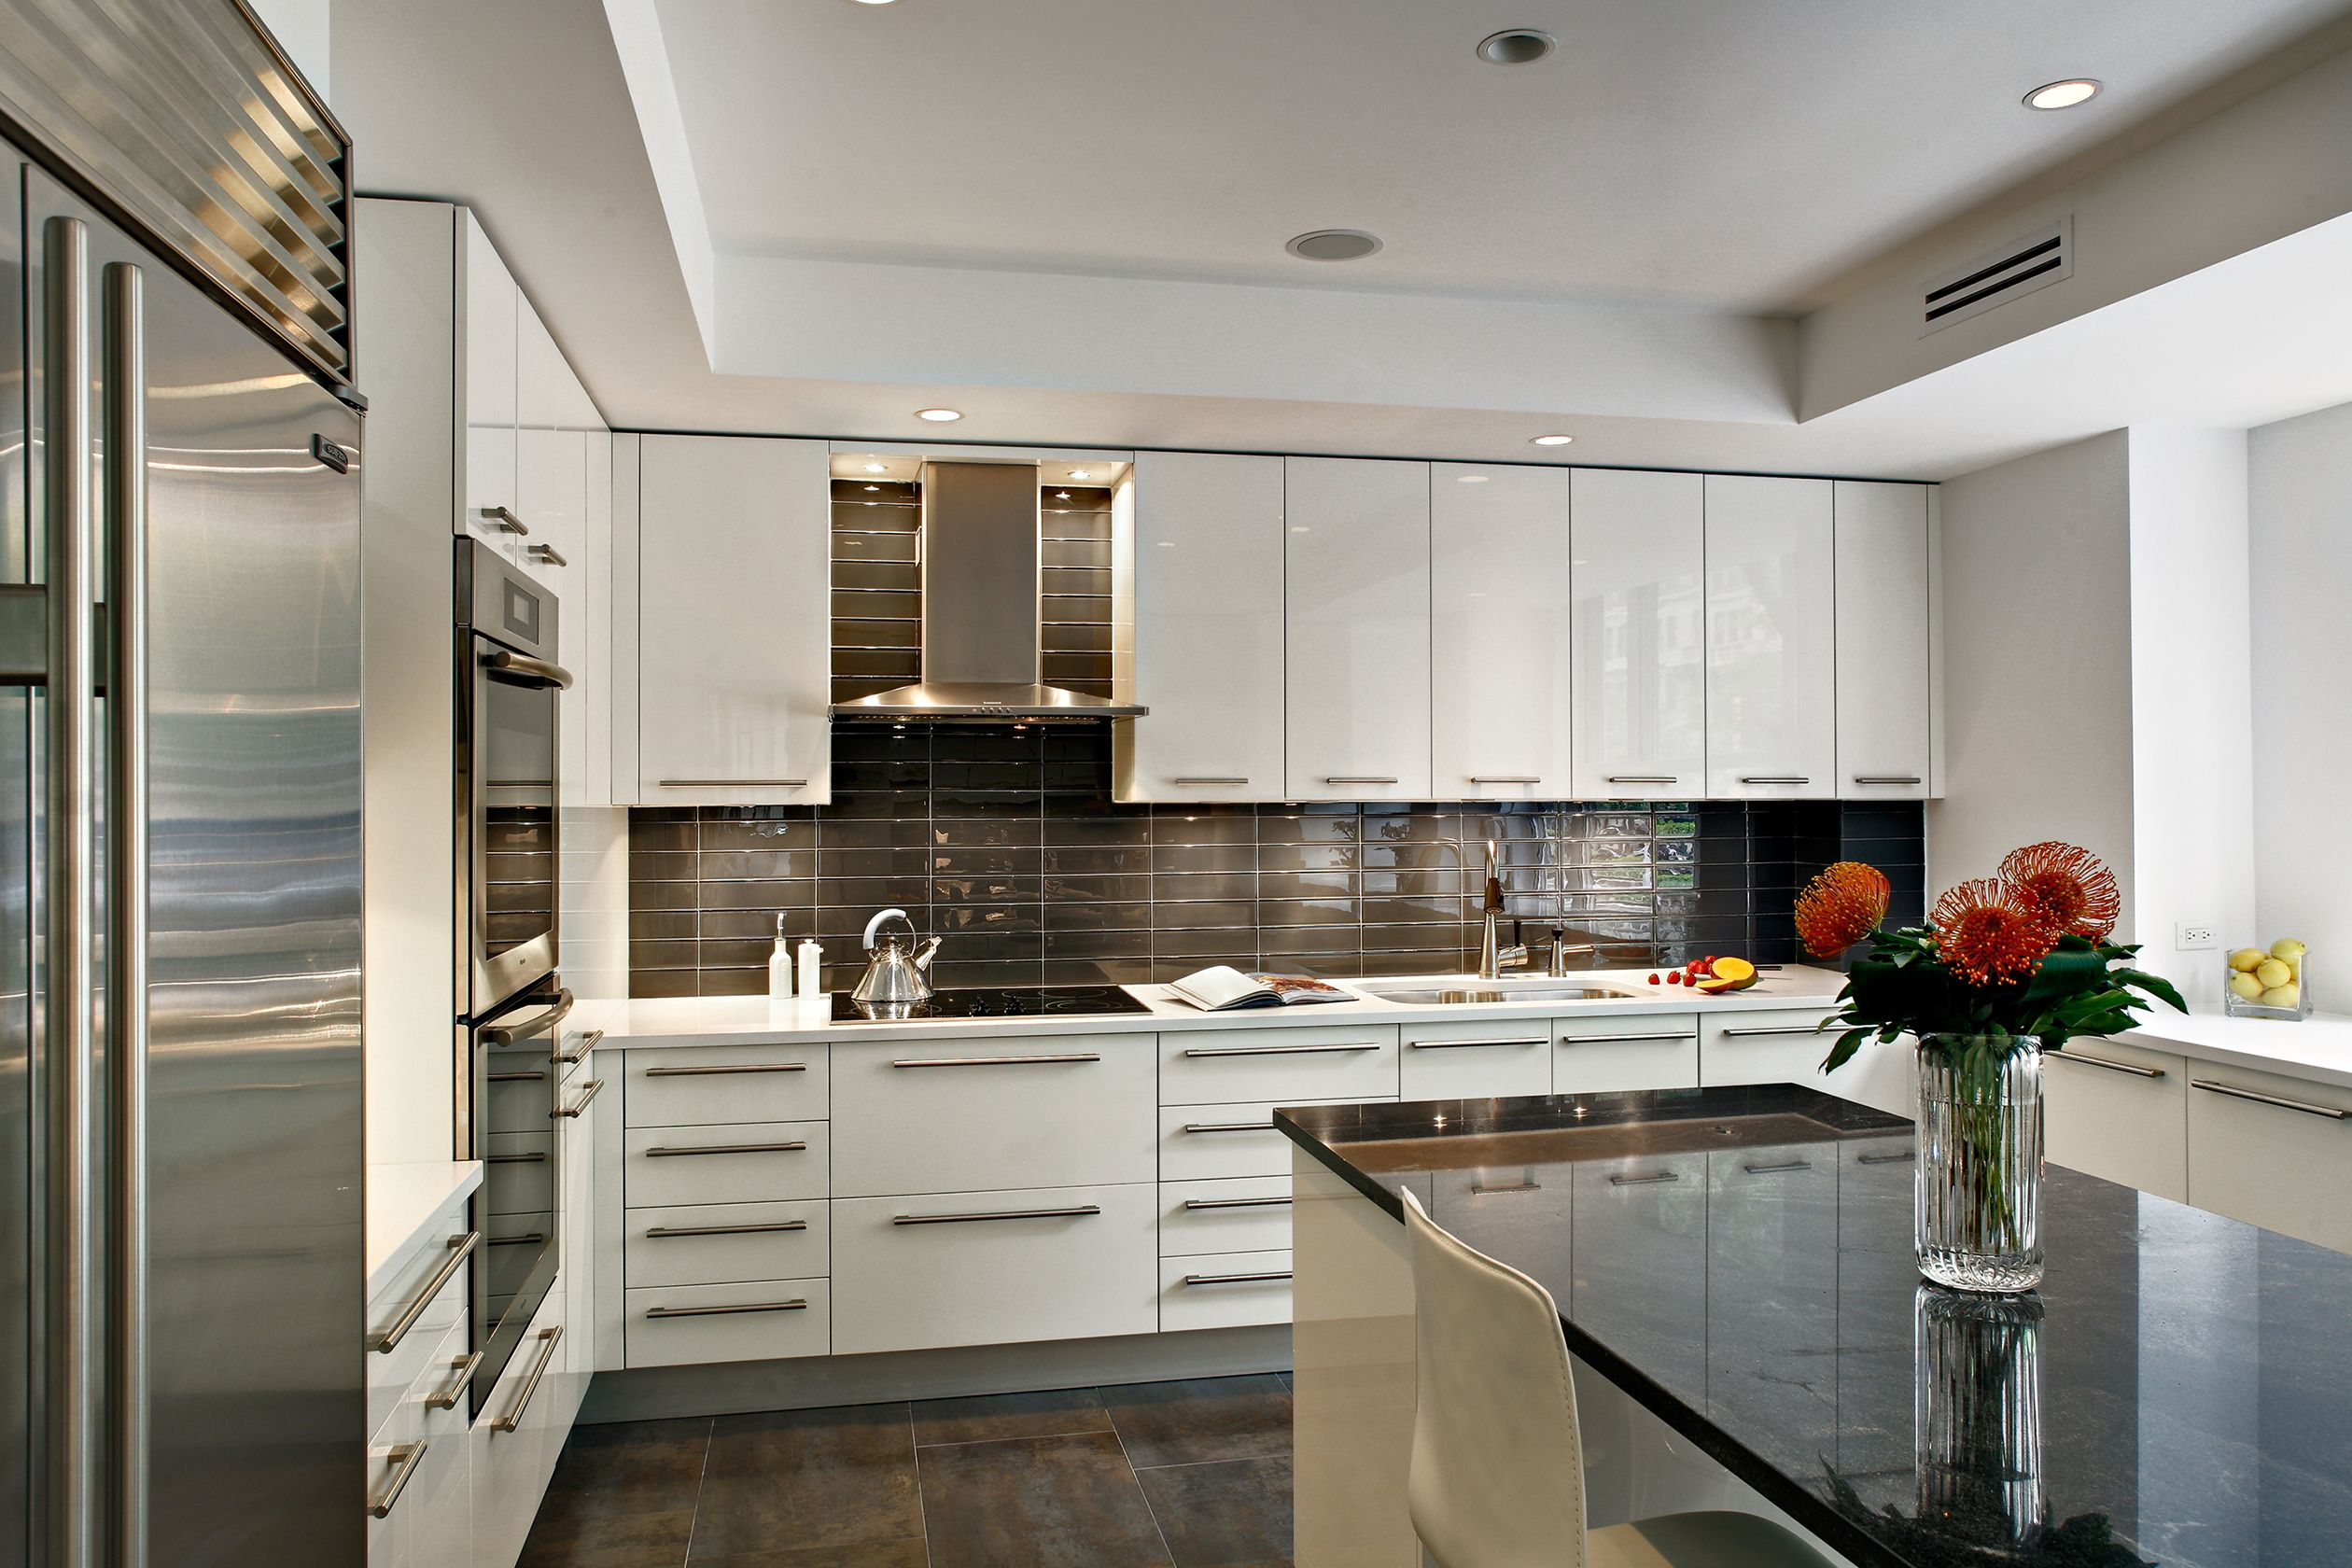 Custom Kitchen Design Contemporary White High Gloss Lacquer Cabinetry With Kitchen Inspiration Design Kitchen Design Contemporary White Kitchen Island Design